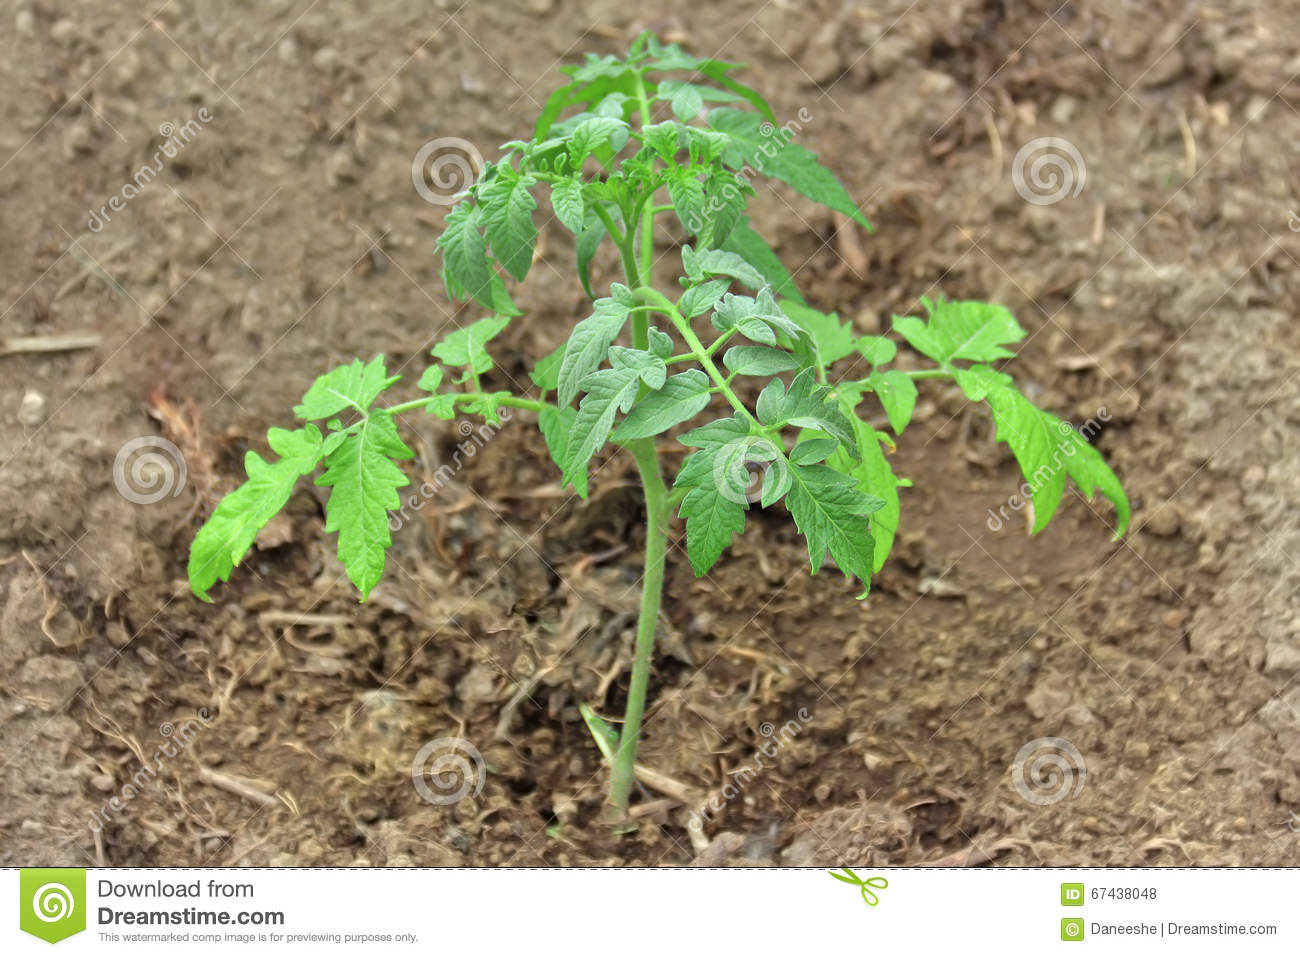 garden sarah sarahs tomato galapagos sale vegetable for s seeds the currant rusted